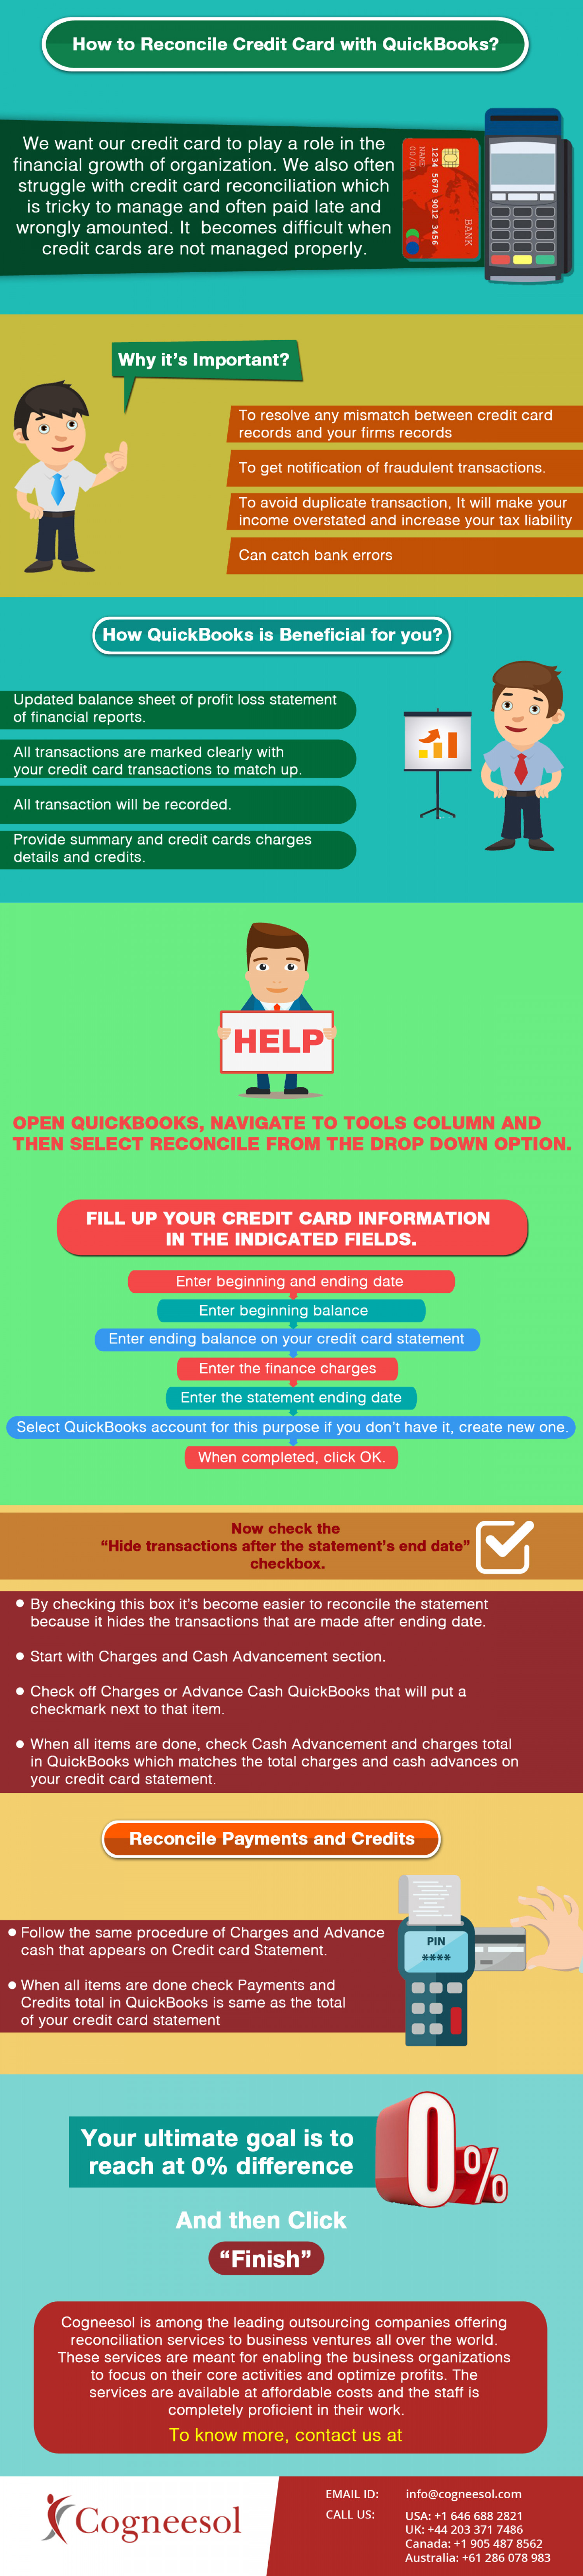 Reconcile Your Credit Card with QucikBooks Infographic